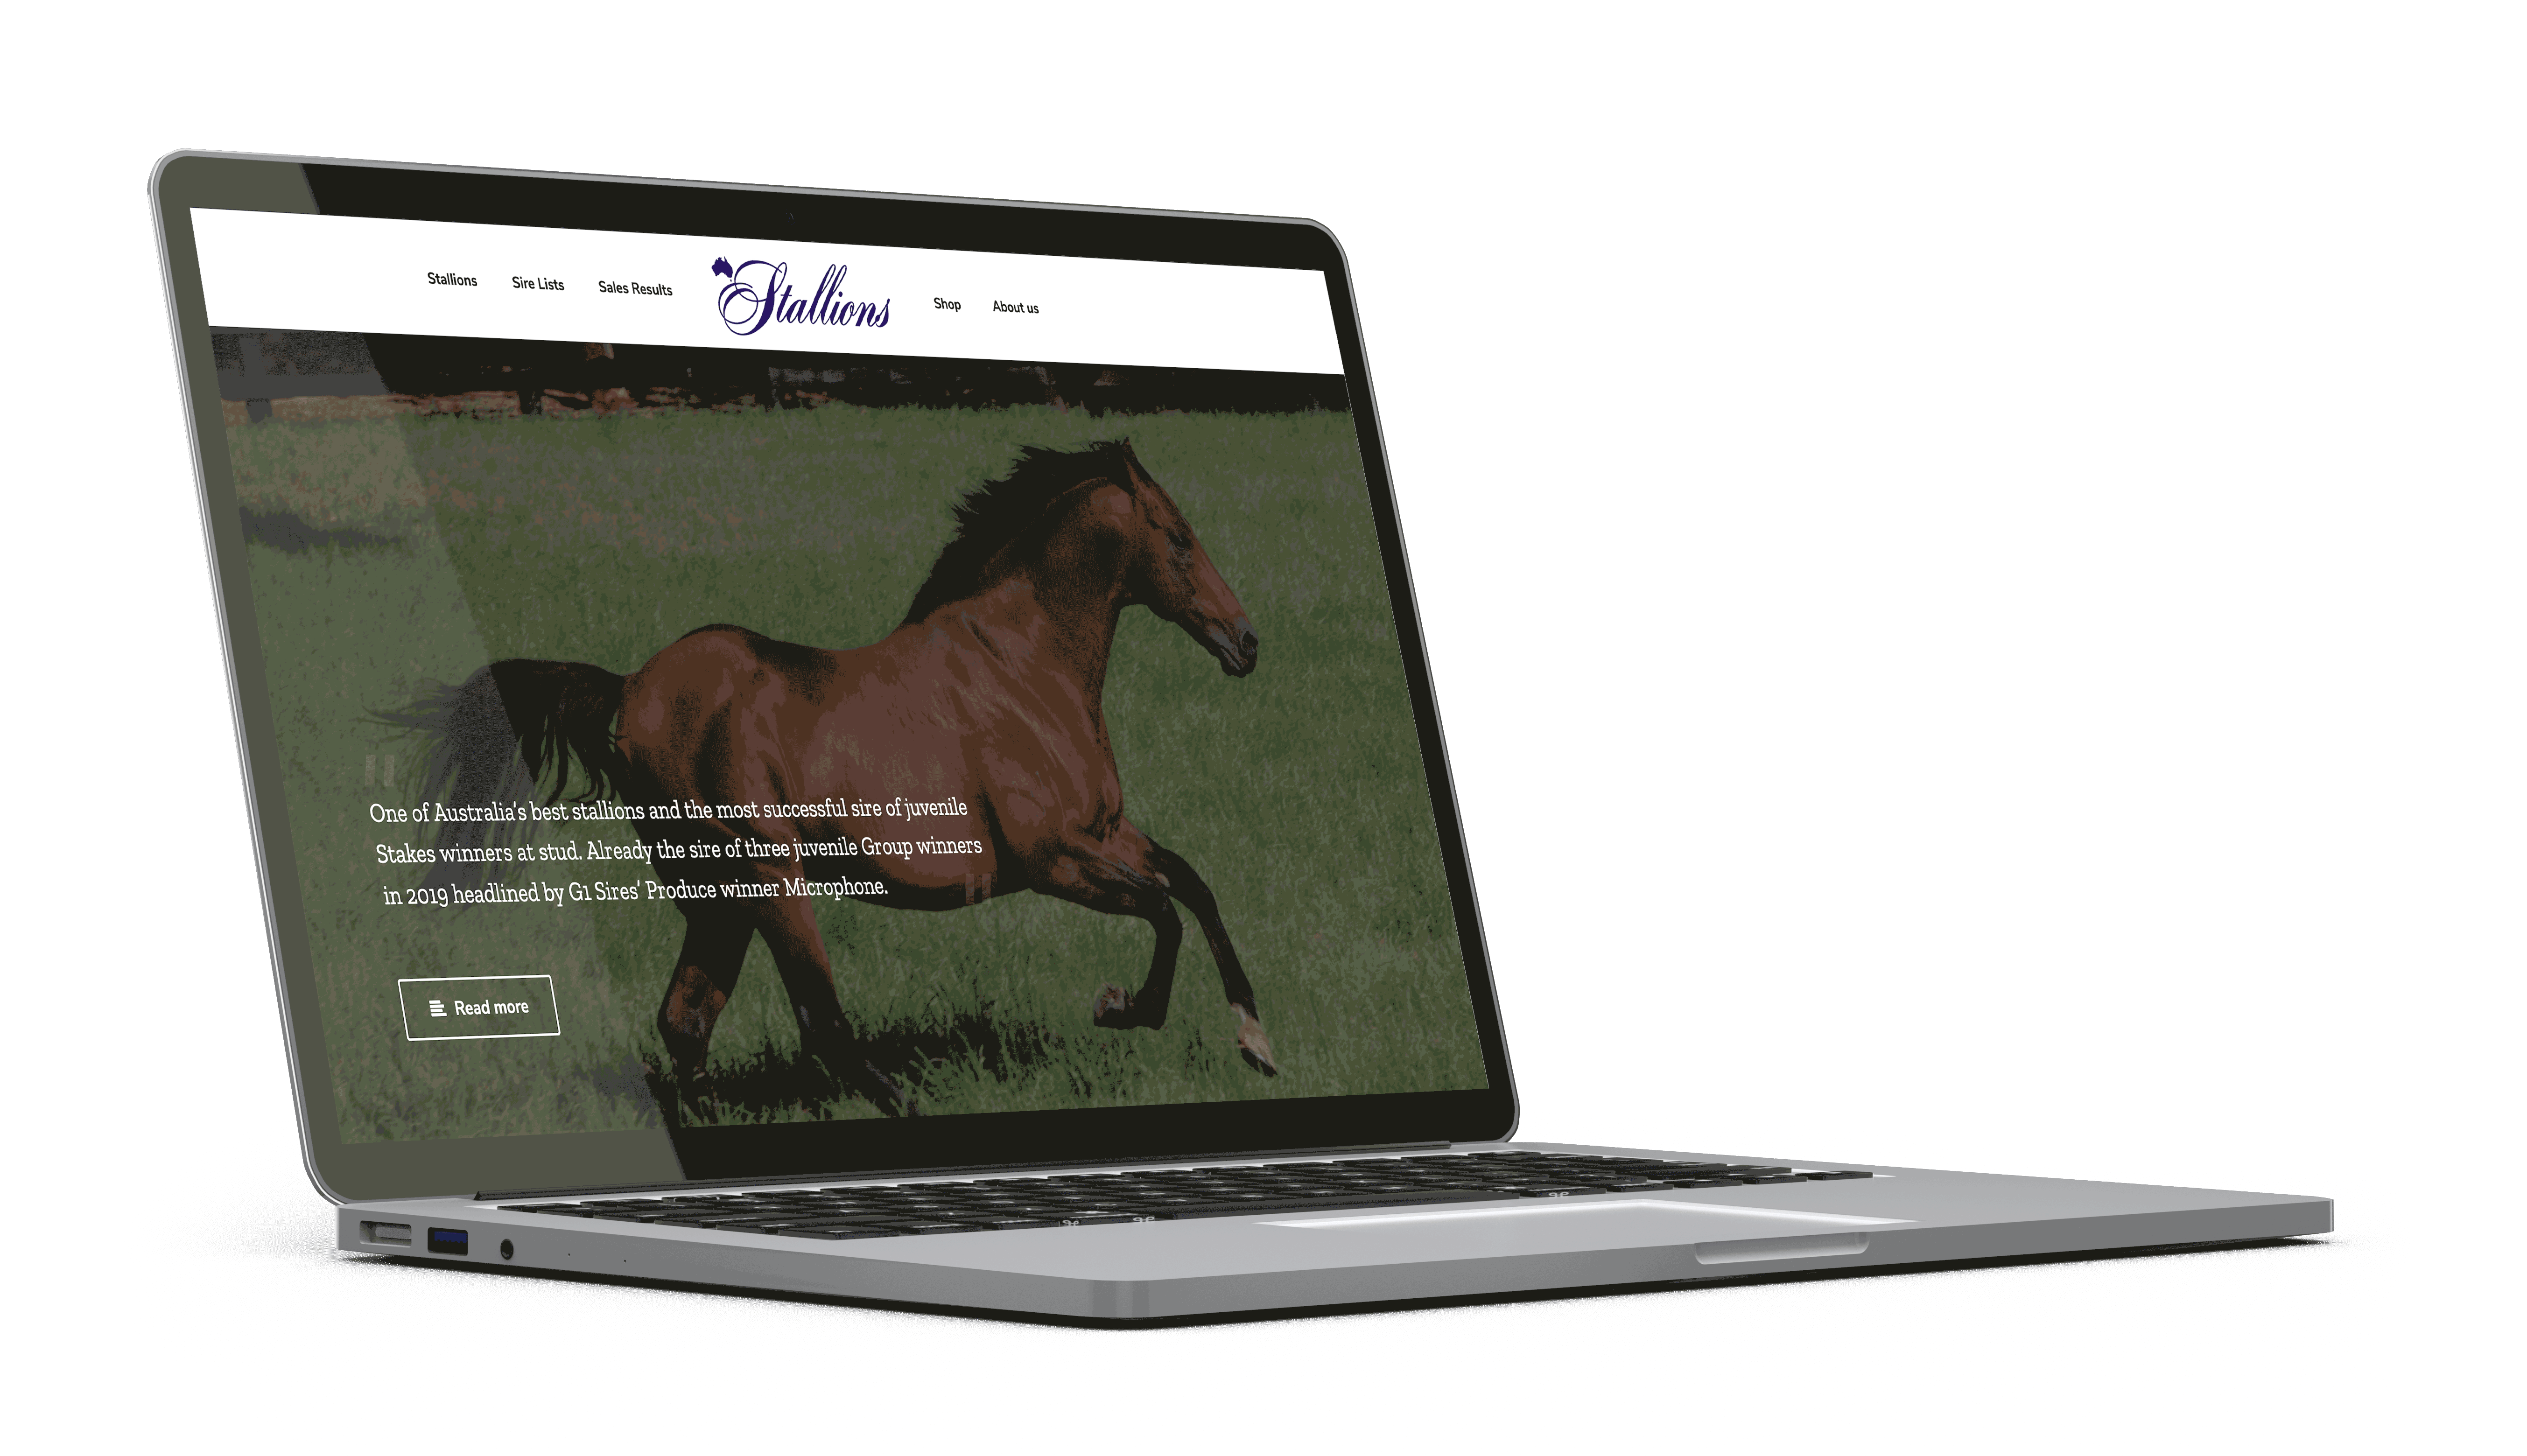 https://www.stallions.com.au/wp-content/uploads/2020/03/laptop-only.png